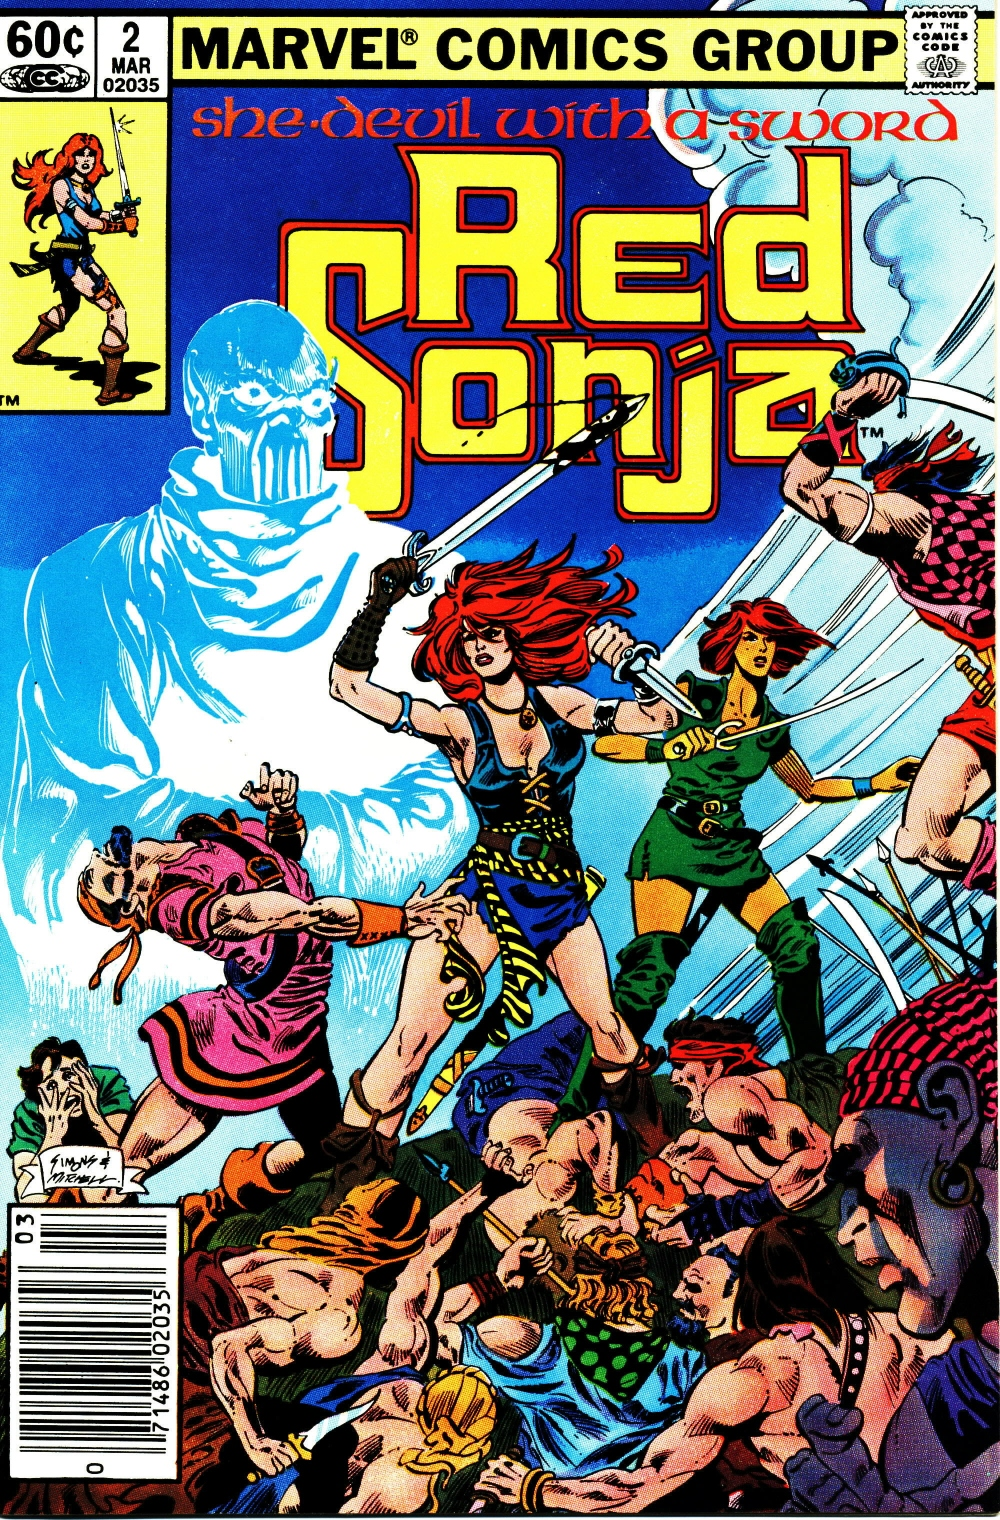 Red Sonja (1983) #2, cover penciled by Dave Simons & inked by Steve Mitchell.